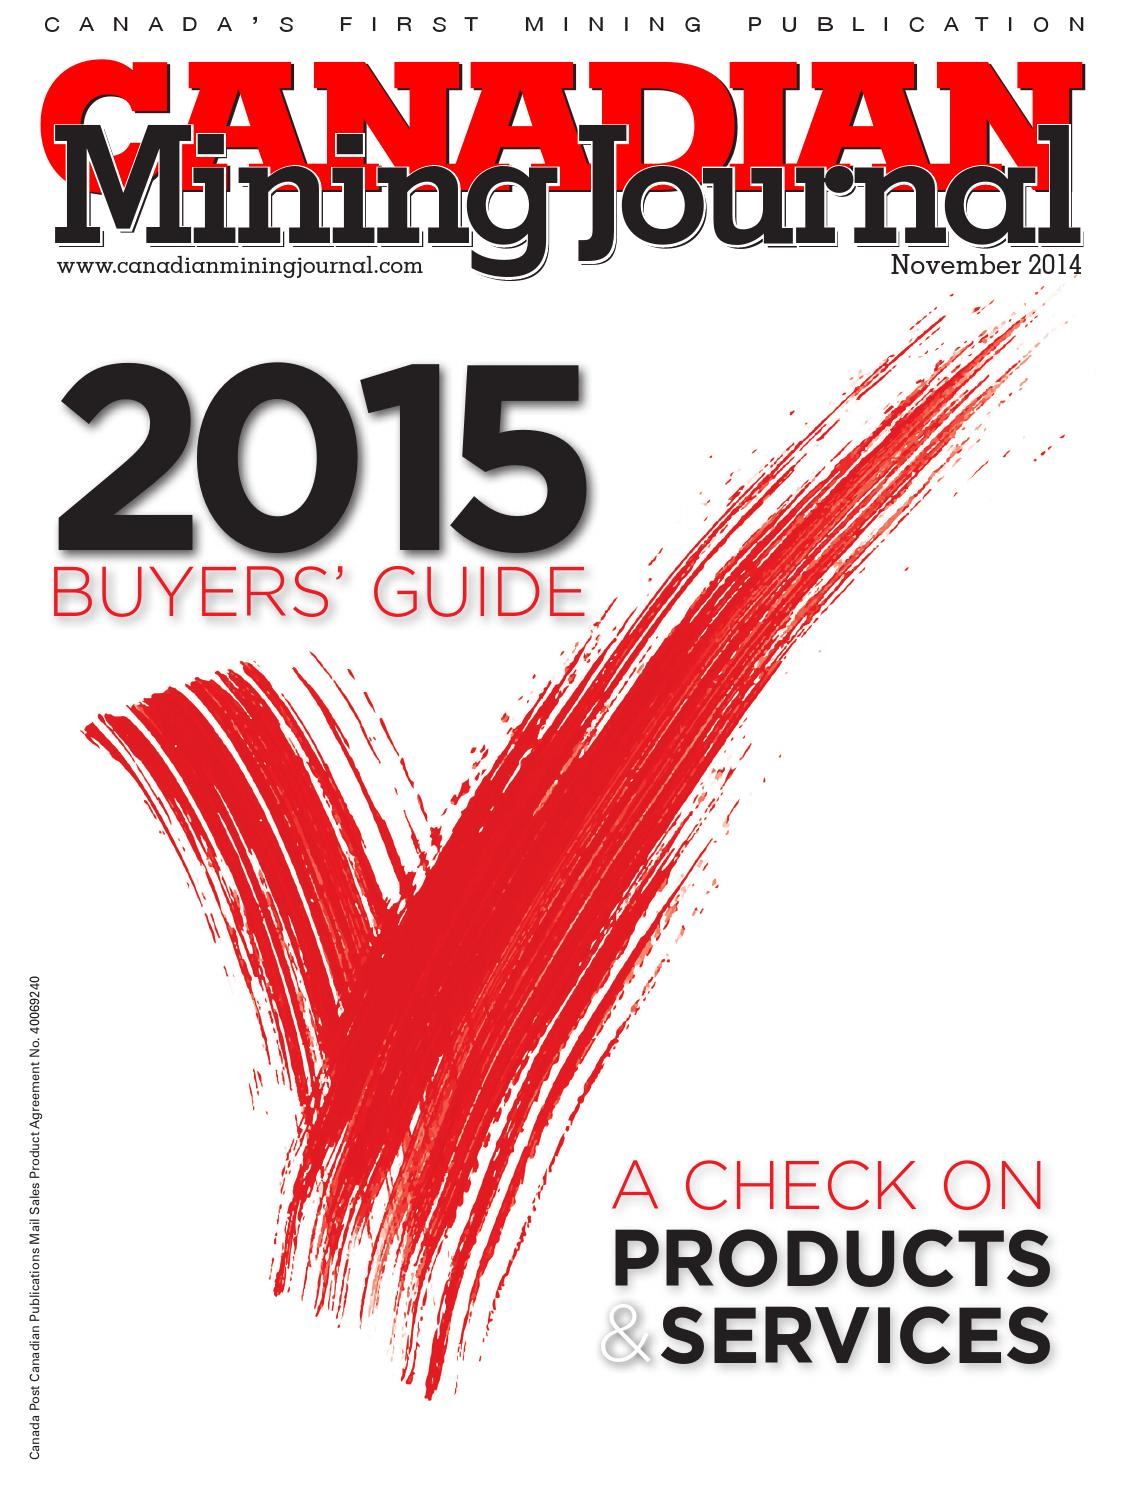 Canadian Mining Journal November 2014 By The Northern Miner Group Lithium Ion 8211 Polymer Usb Battery Charger Max1811 Issuu